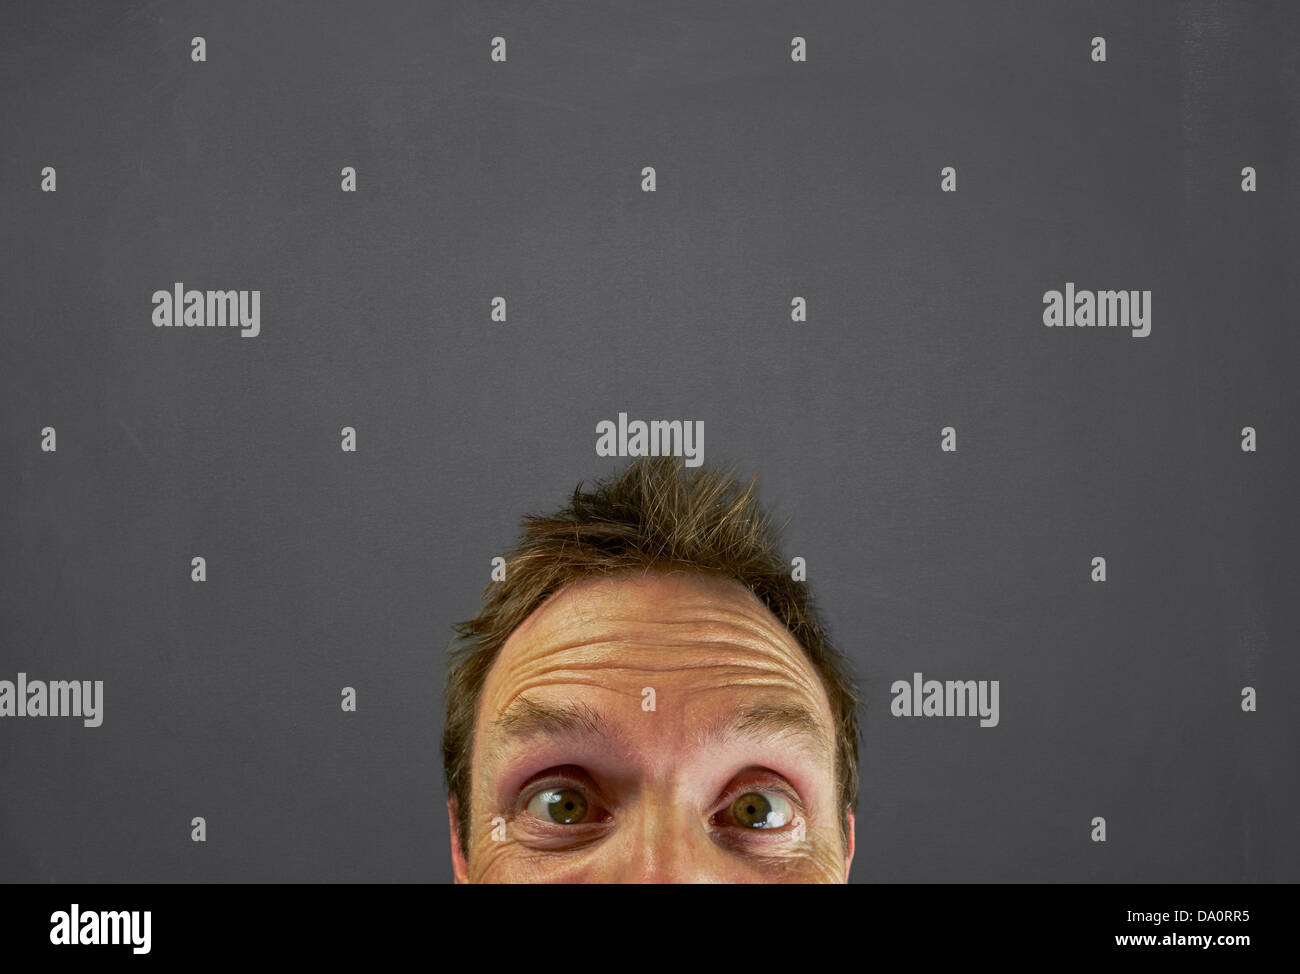 Mans Head in front of a chalkboard with a blankspace to write or draw a message above. - Stock Image